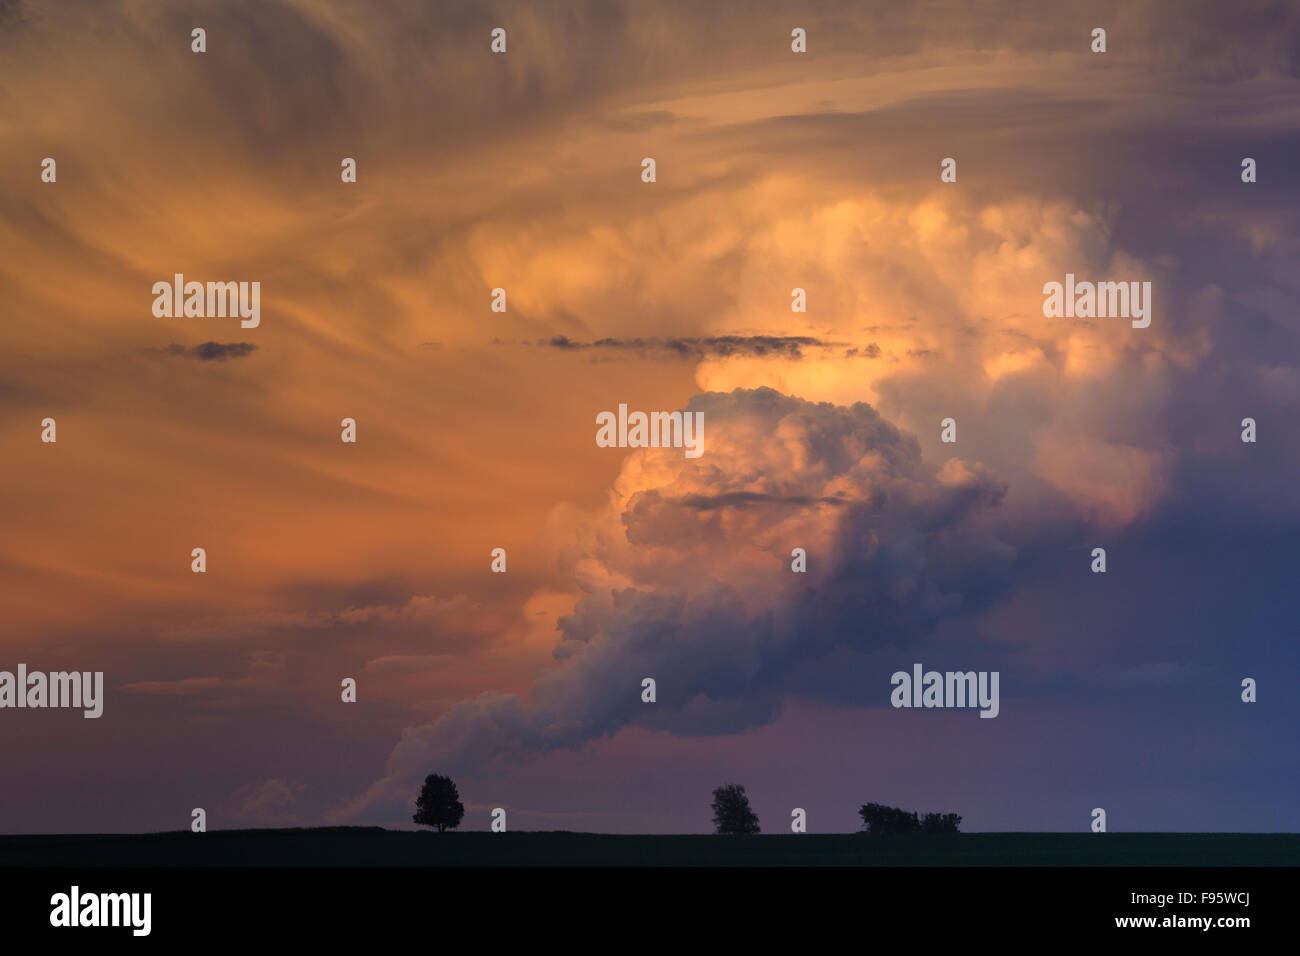 Storm cloud at sunset near Airdrie, Alberta, Canada - Stock Image